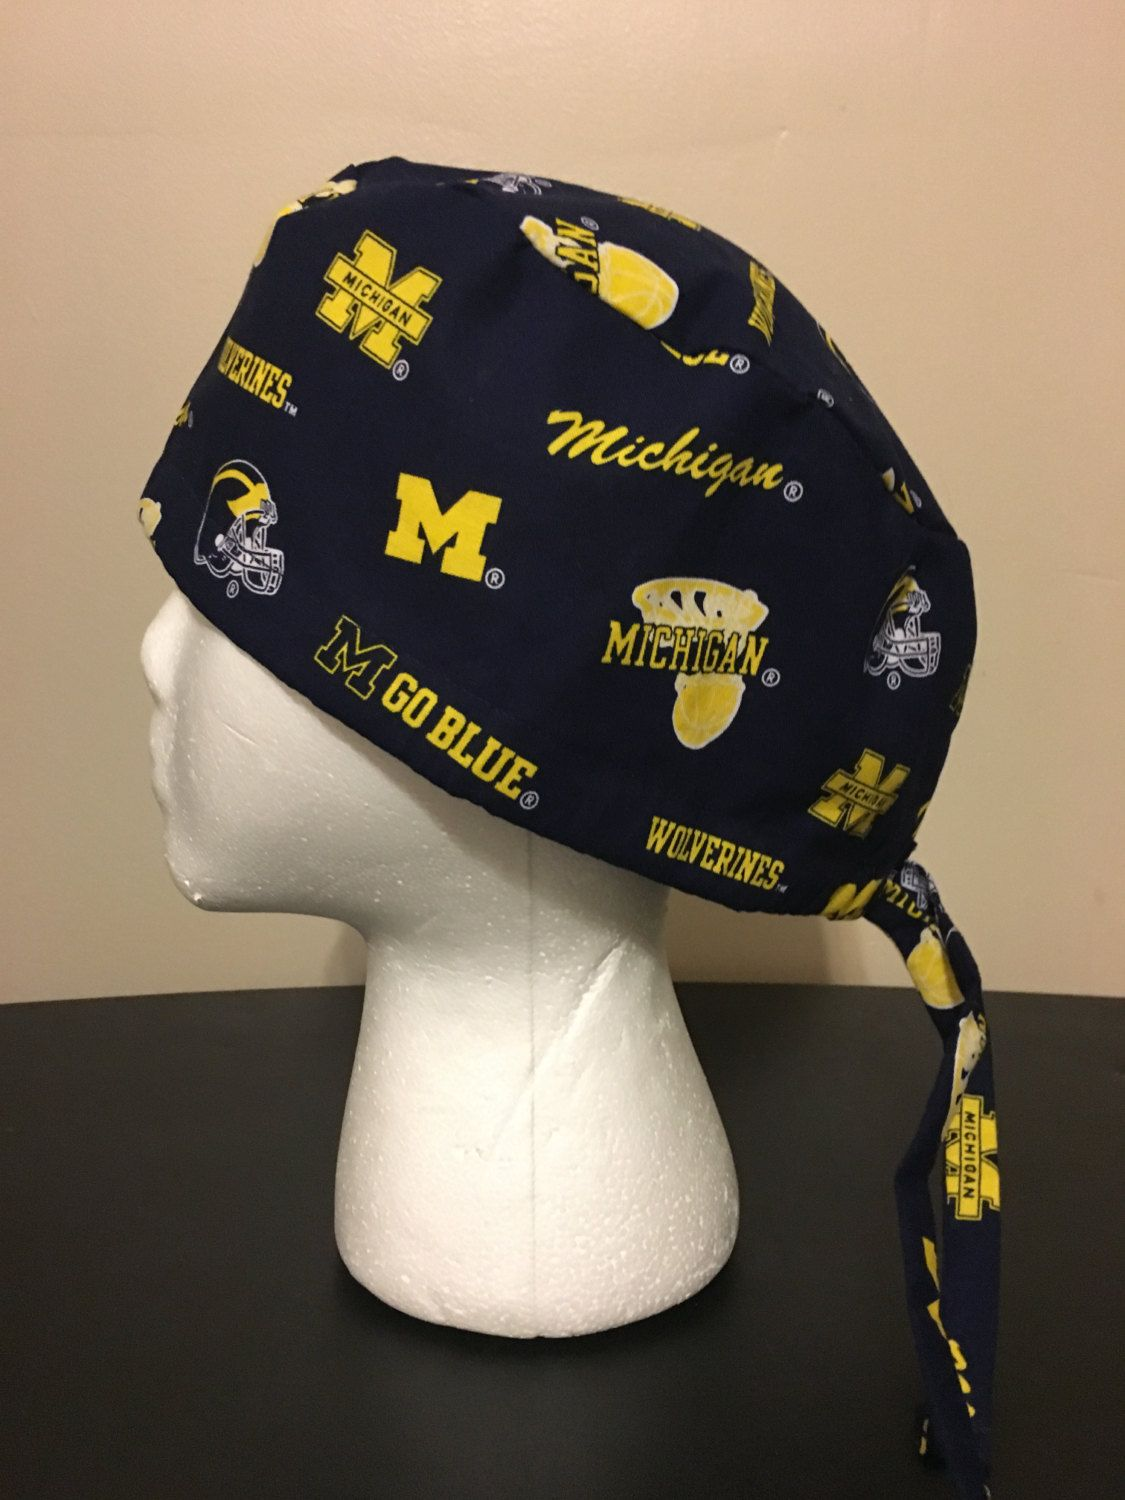 797bbd50190 ... germany university of michigan logos on blue surgery cap scrub hat  scrub caps by quiltsbyhayley on